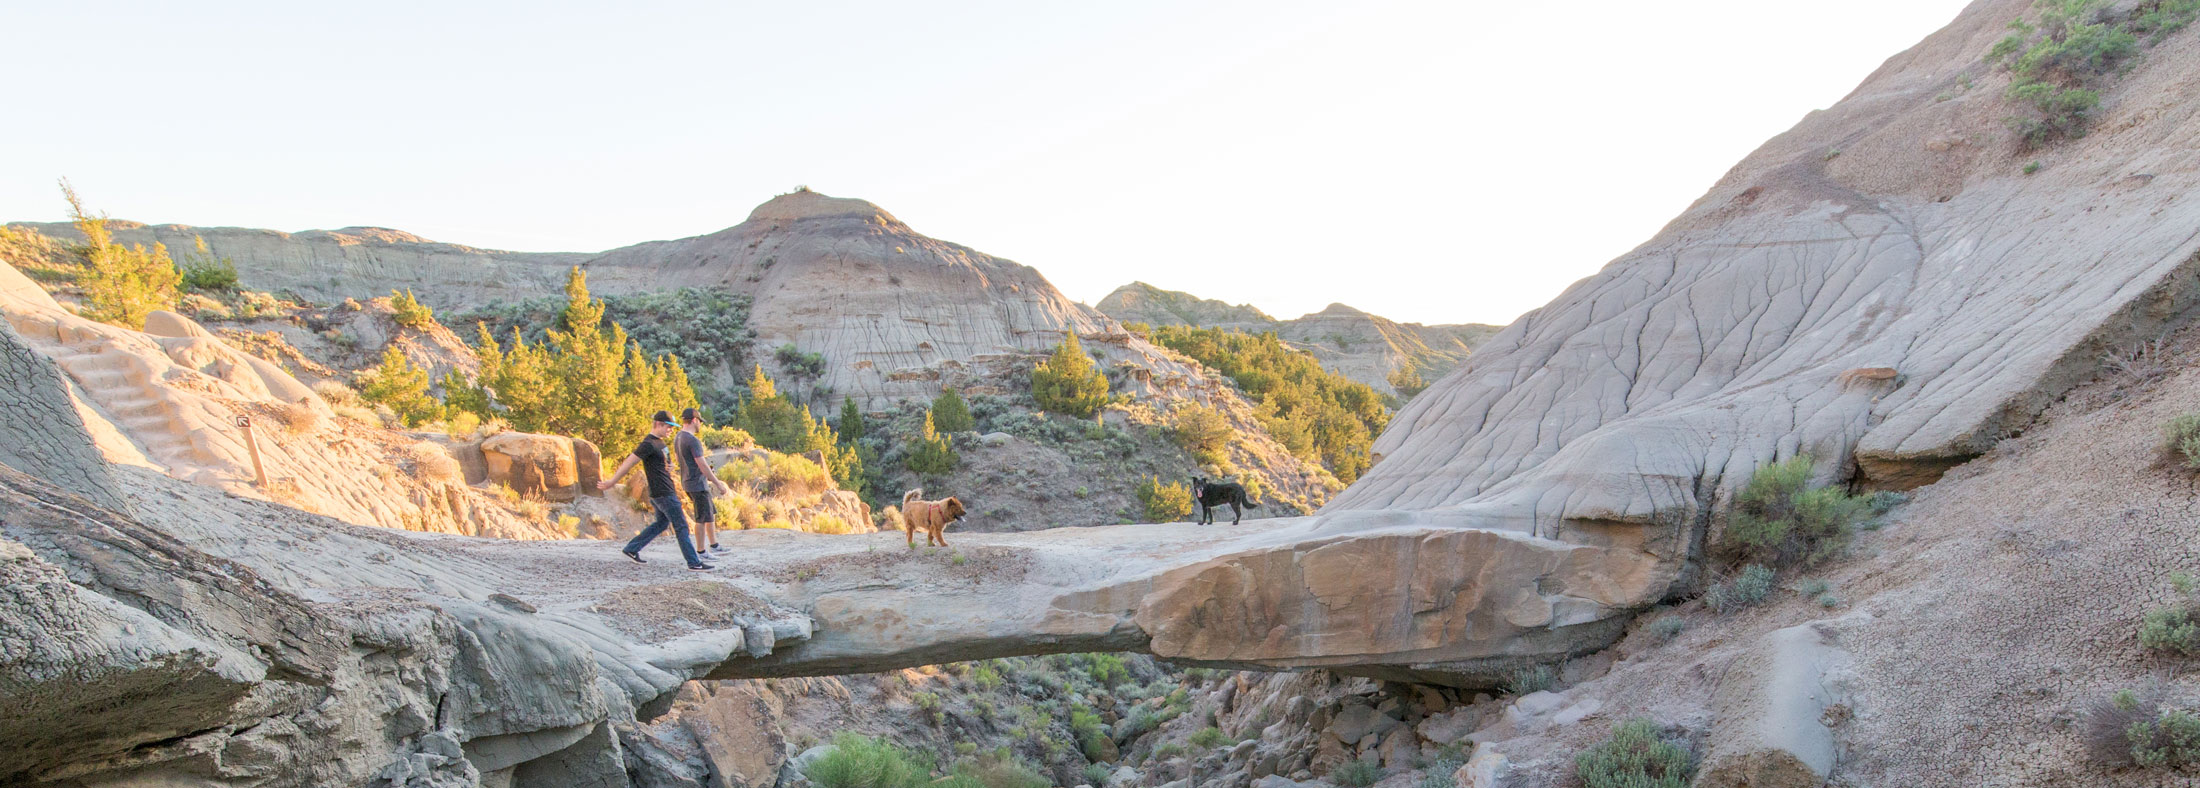 Hiking Across Southeast Montana: Get Out Here and Explore